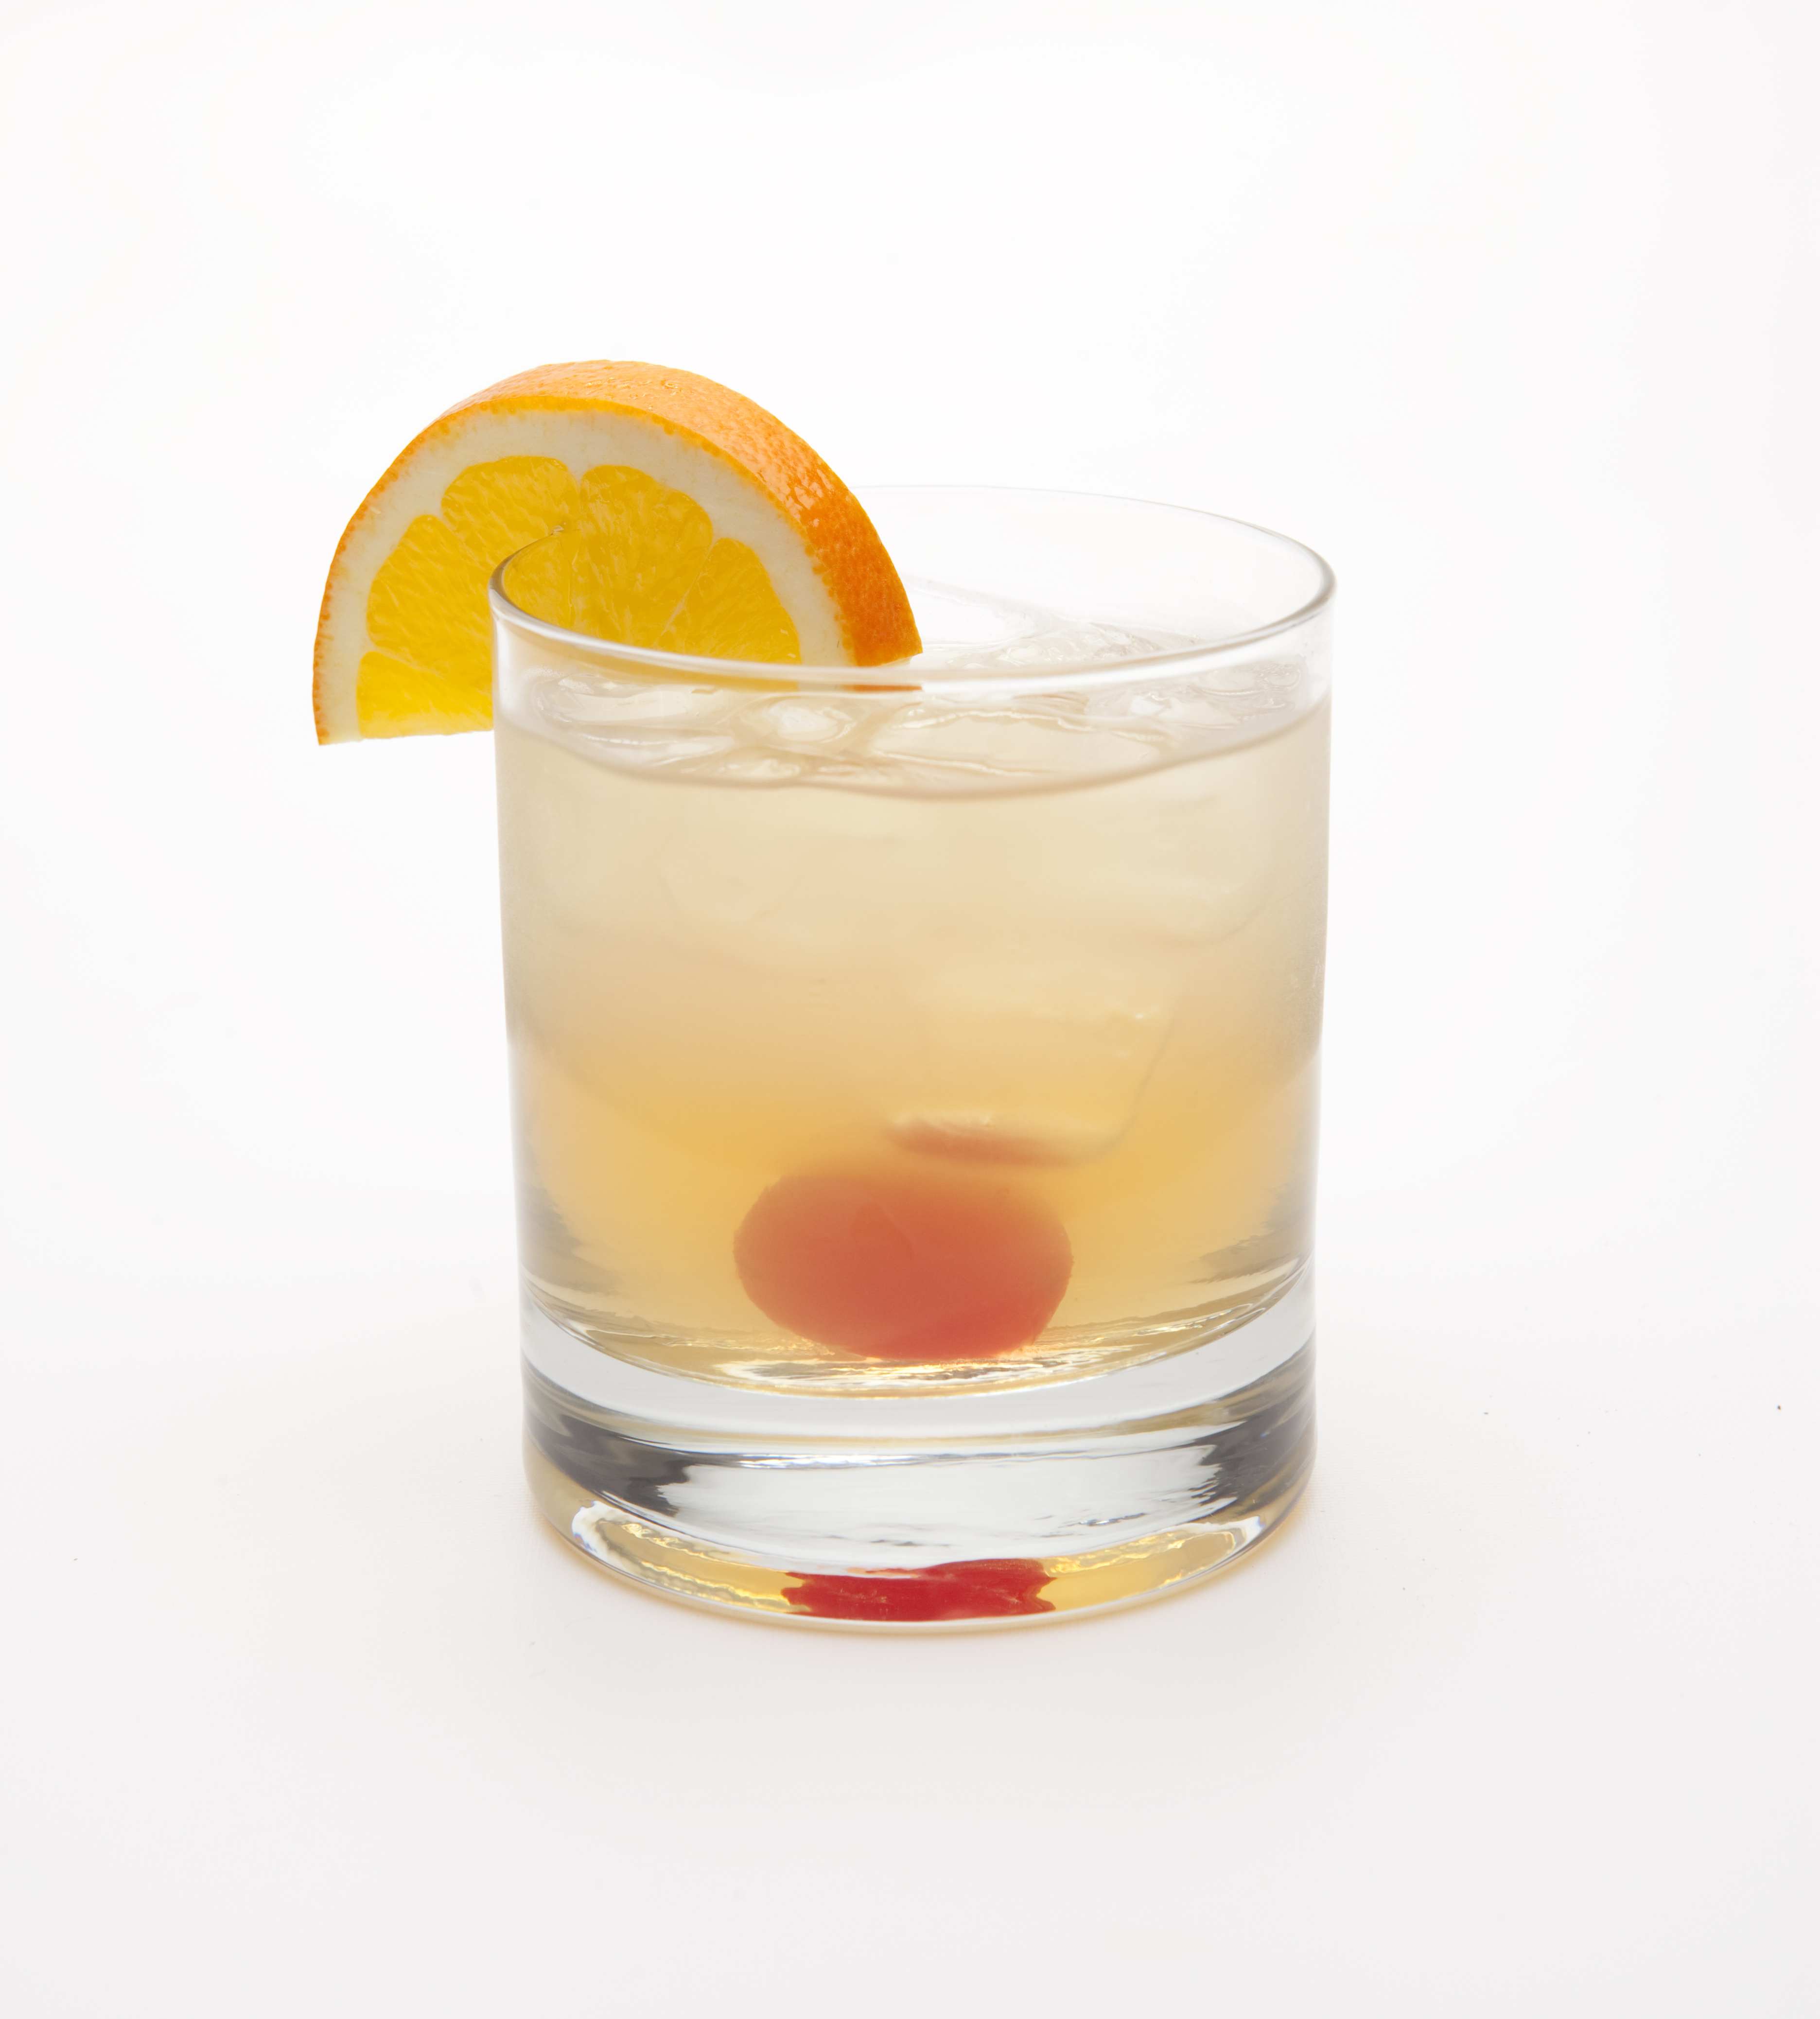 Friday's Feature Cocktail: Apricot Sour